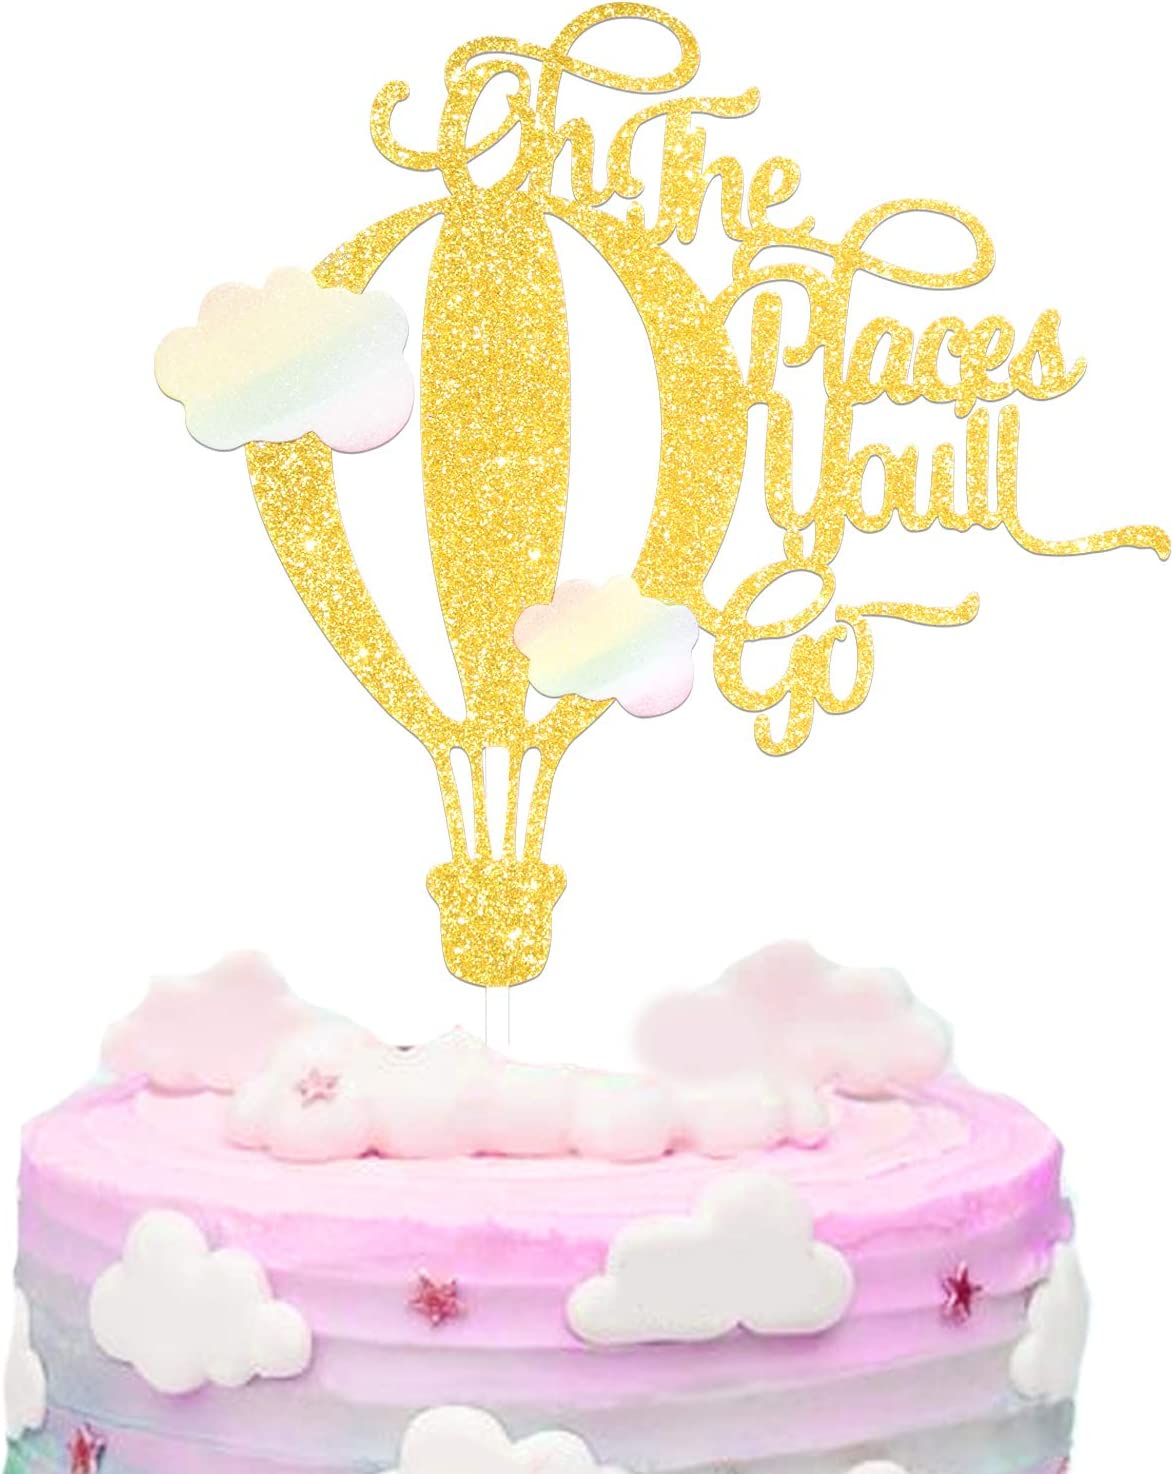 Oh The Places You'll Go Cake Topper Happy Birthday Glitter Colorful Clouds Hot Air Balloon Travel Theme Party Decorations Picks for Baby Shower Birthday Decor Supplies